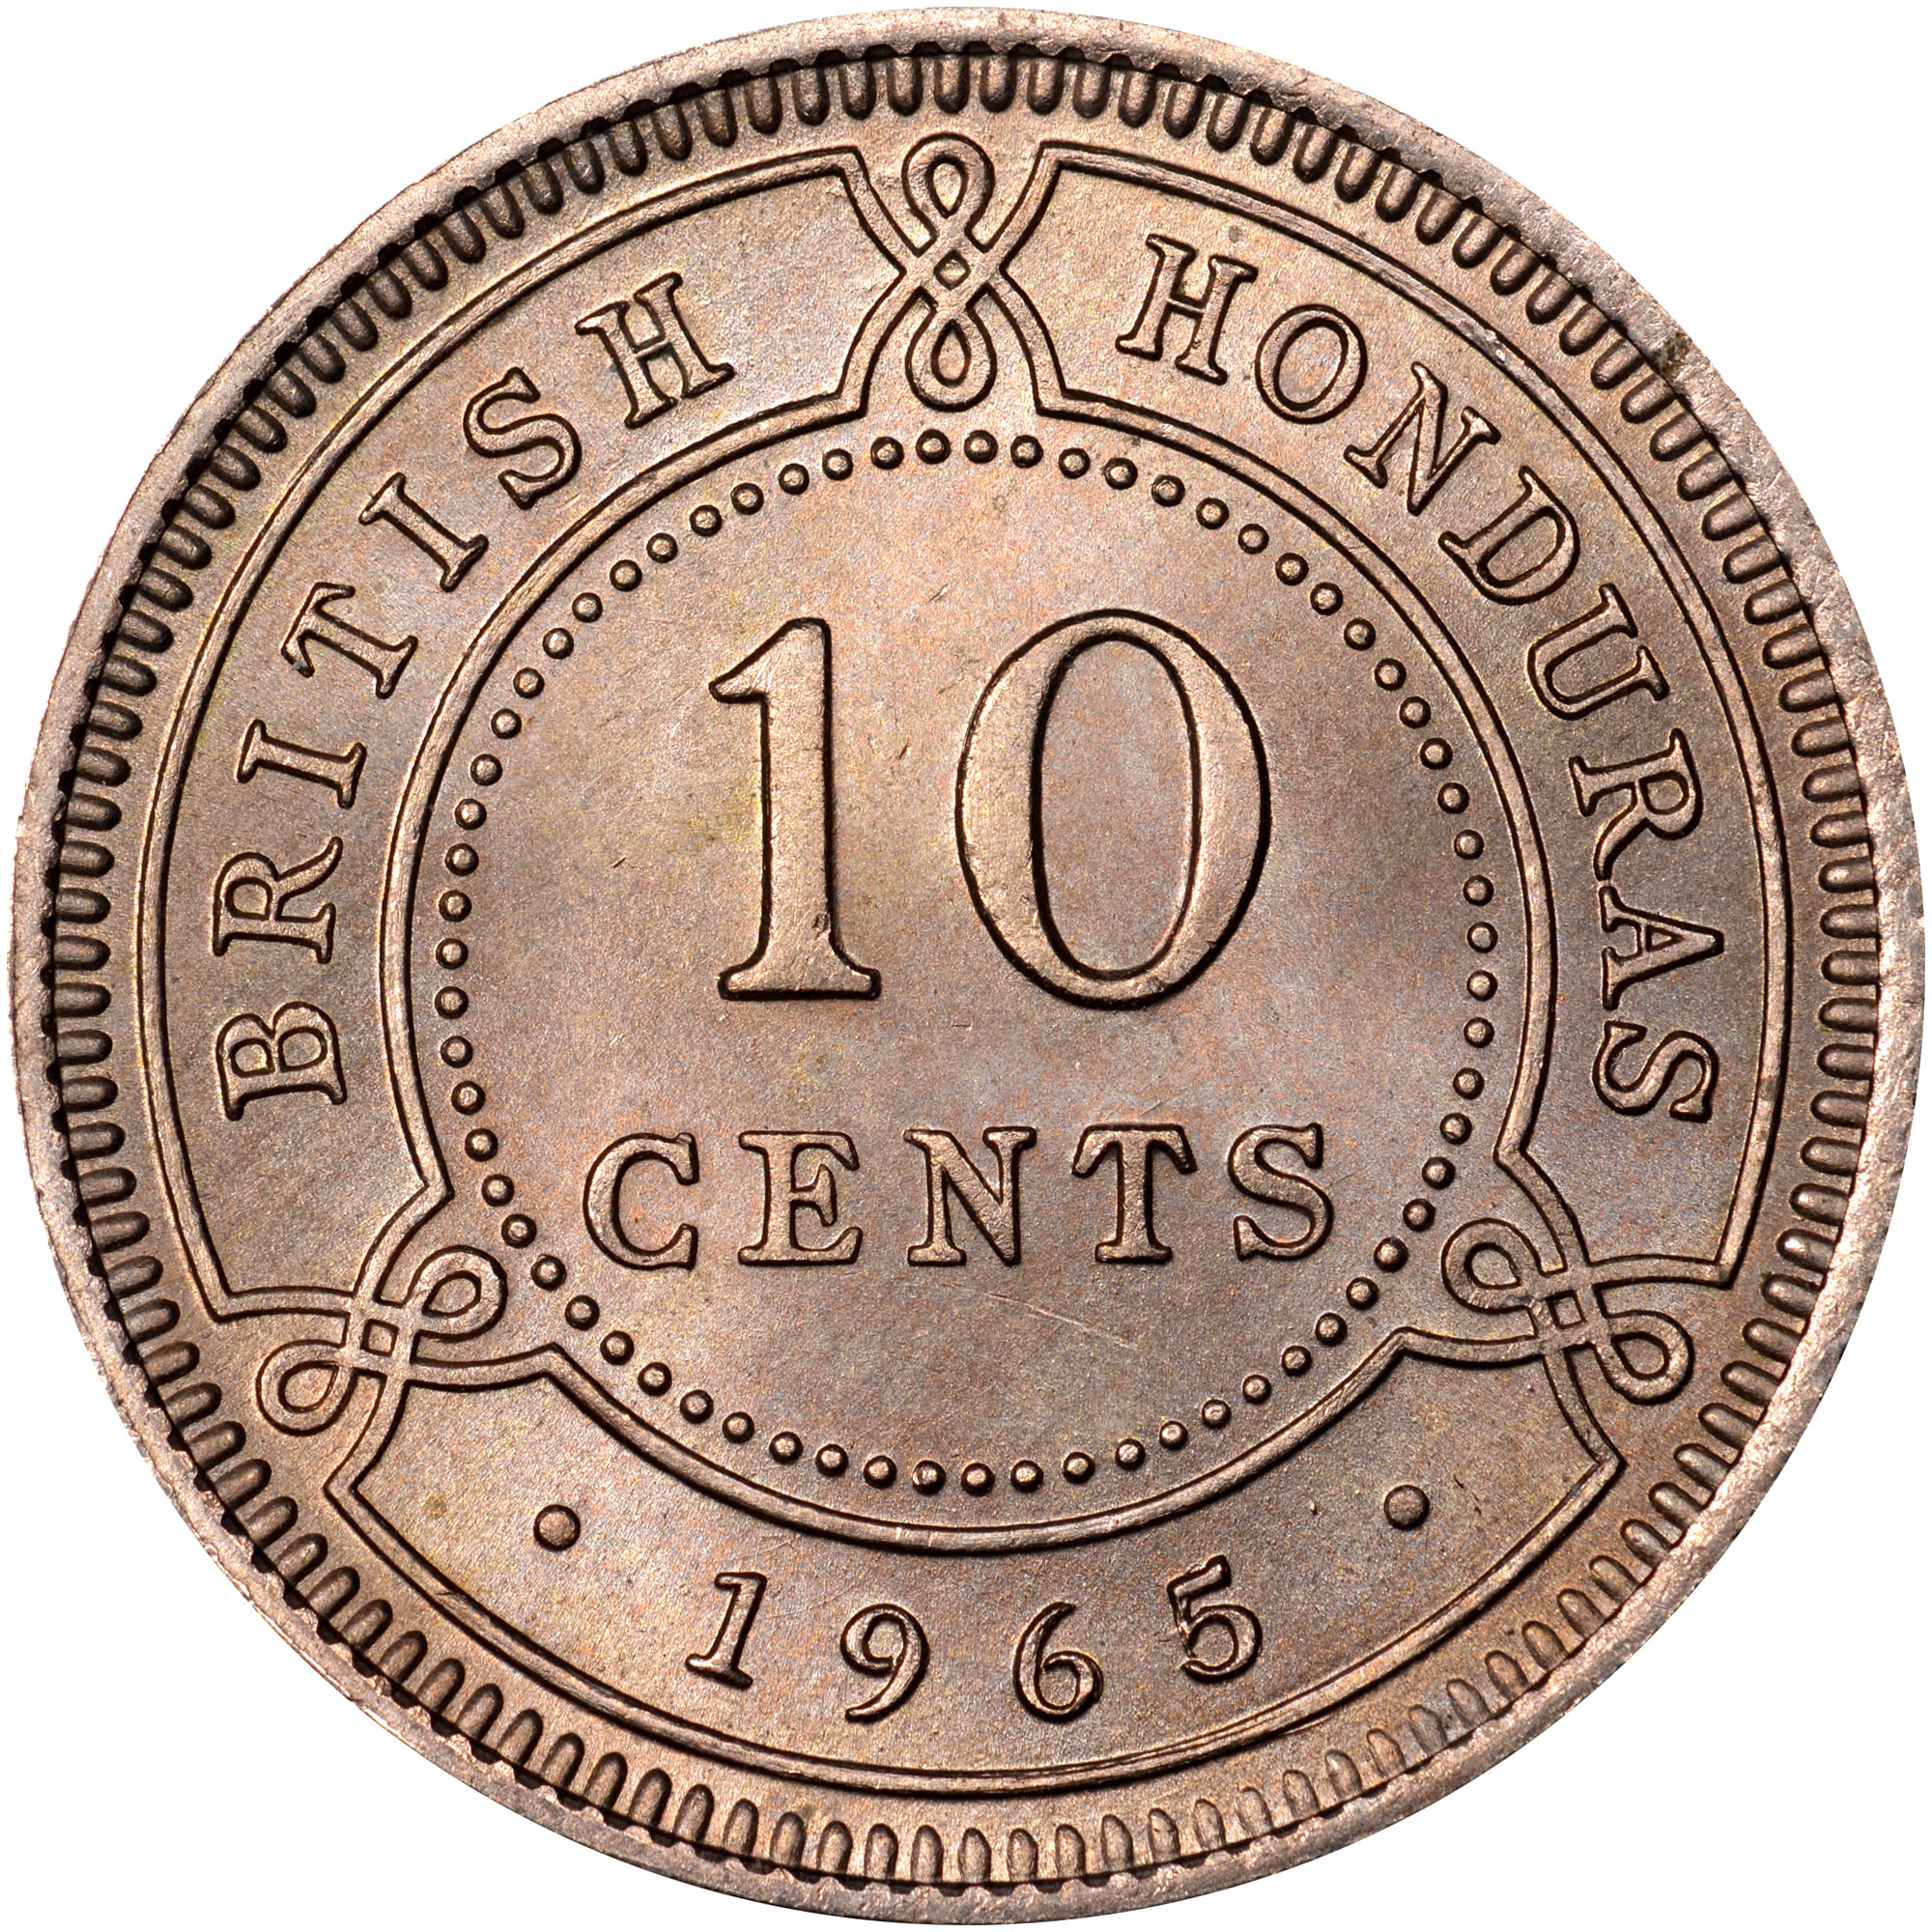 1956-1970 British Honduras 10 Cents reverse